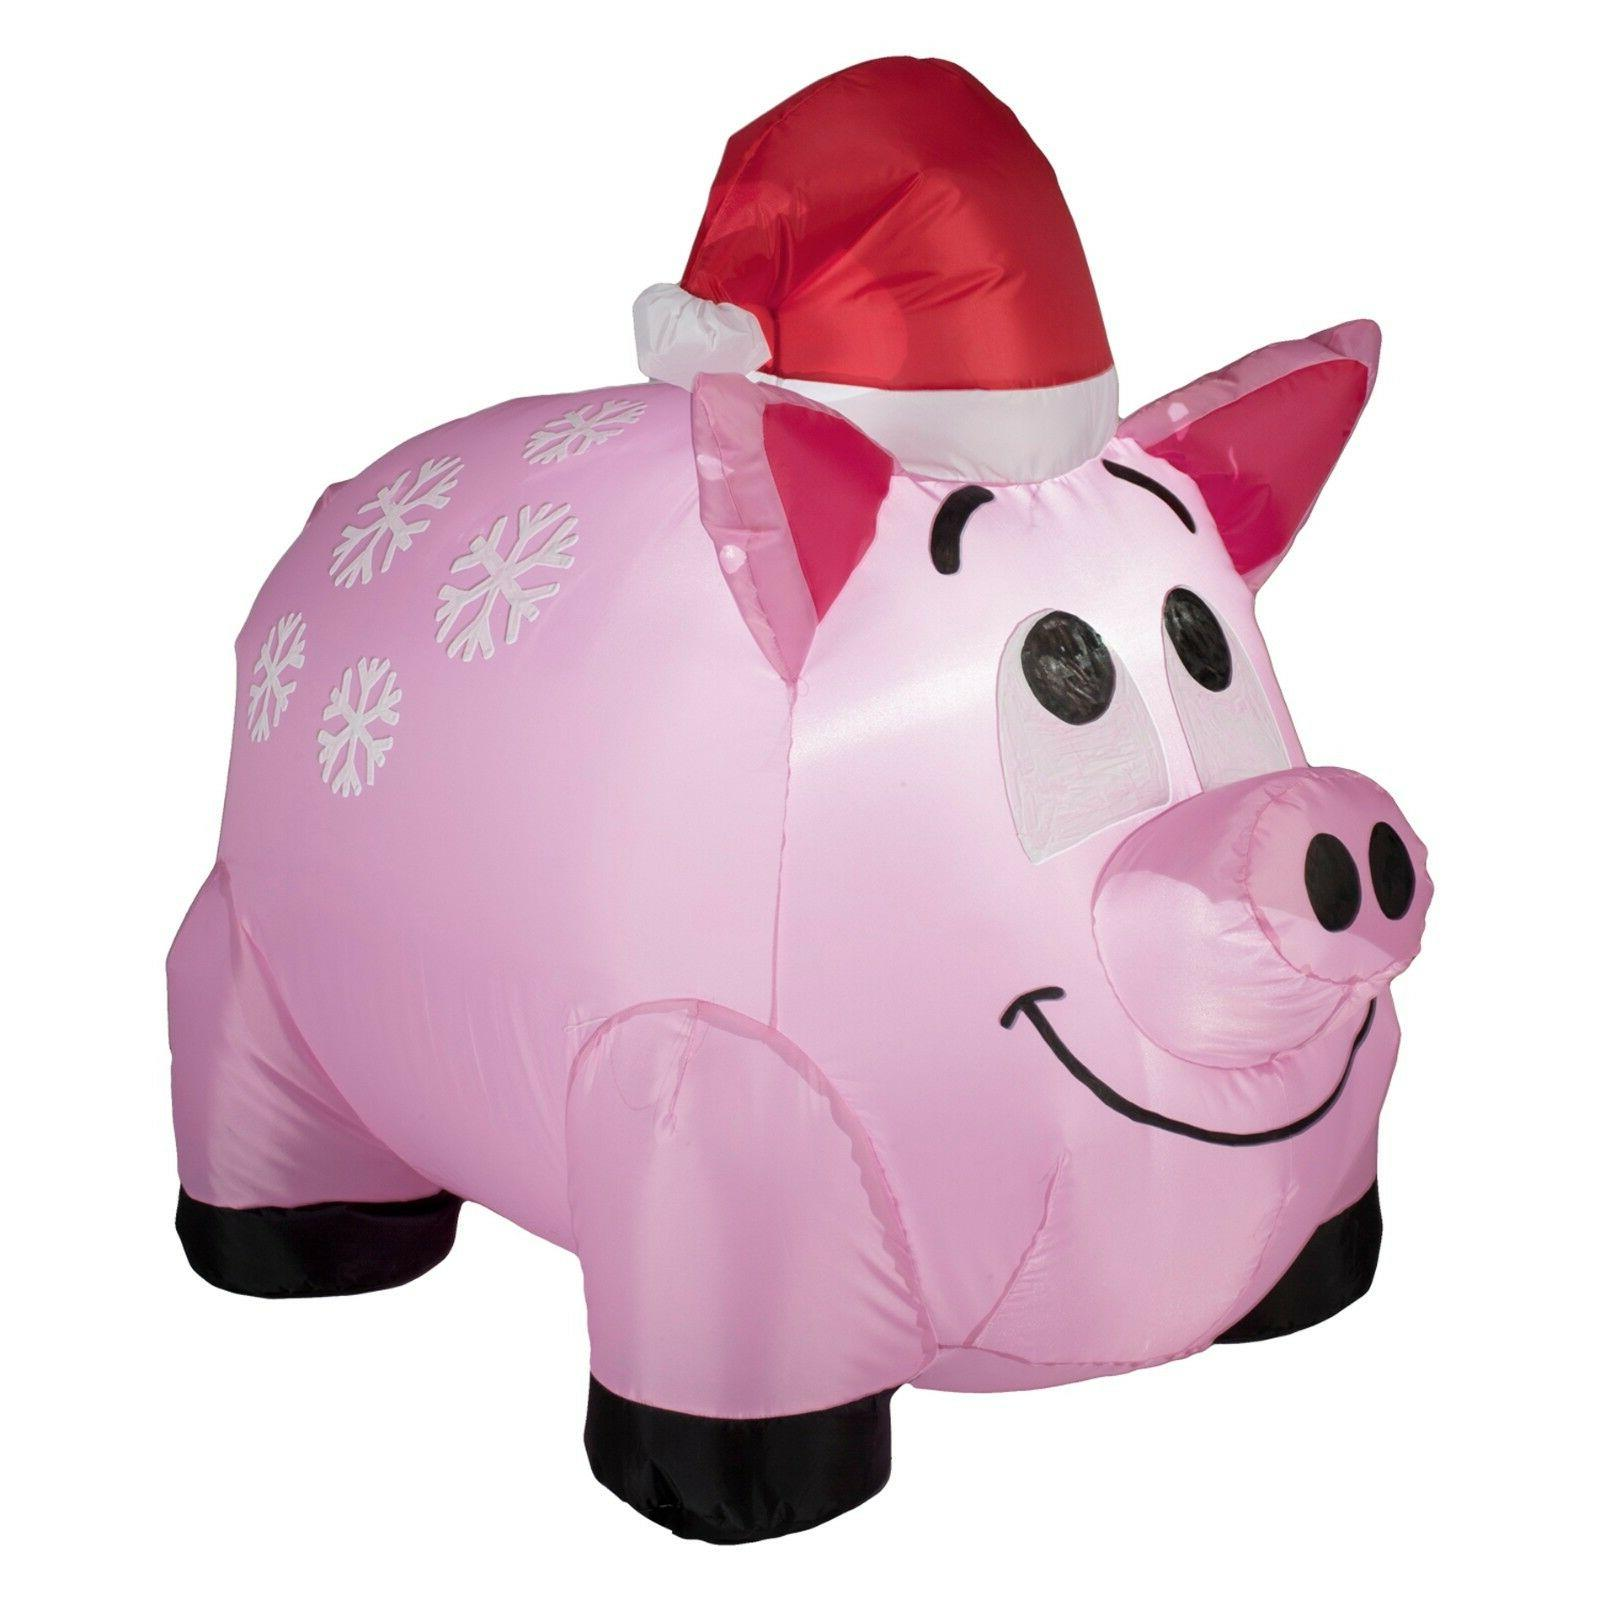 New ! Snowflakes Pig Inflatable Gemmy Airblown Christmas Dec